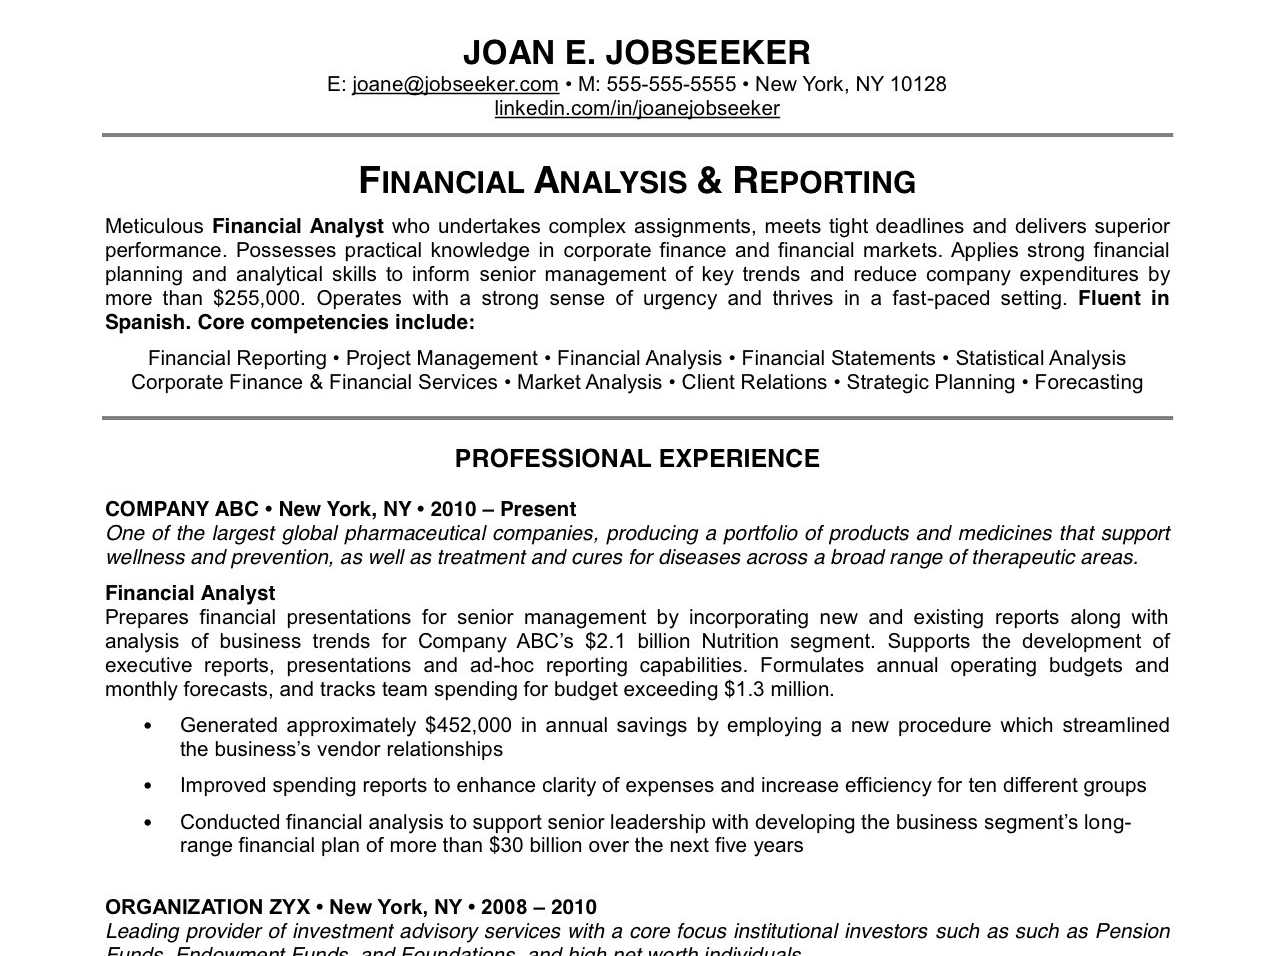 reasons why this is an excellent resume best resume format by joan e jobseeker - Best Sample Resumes